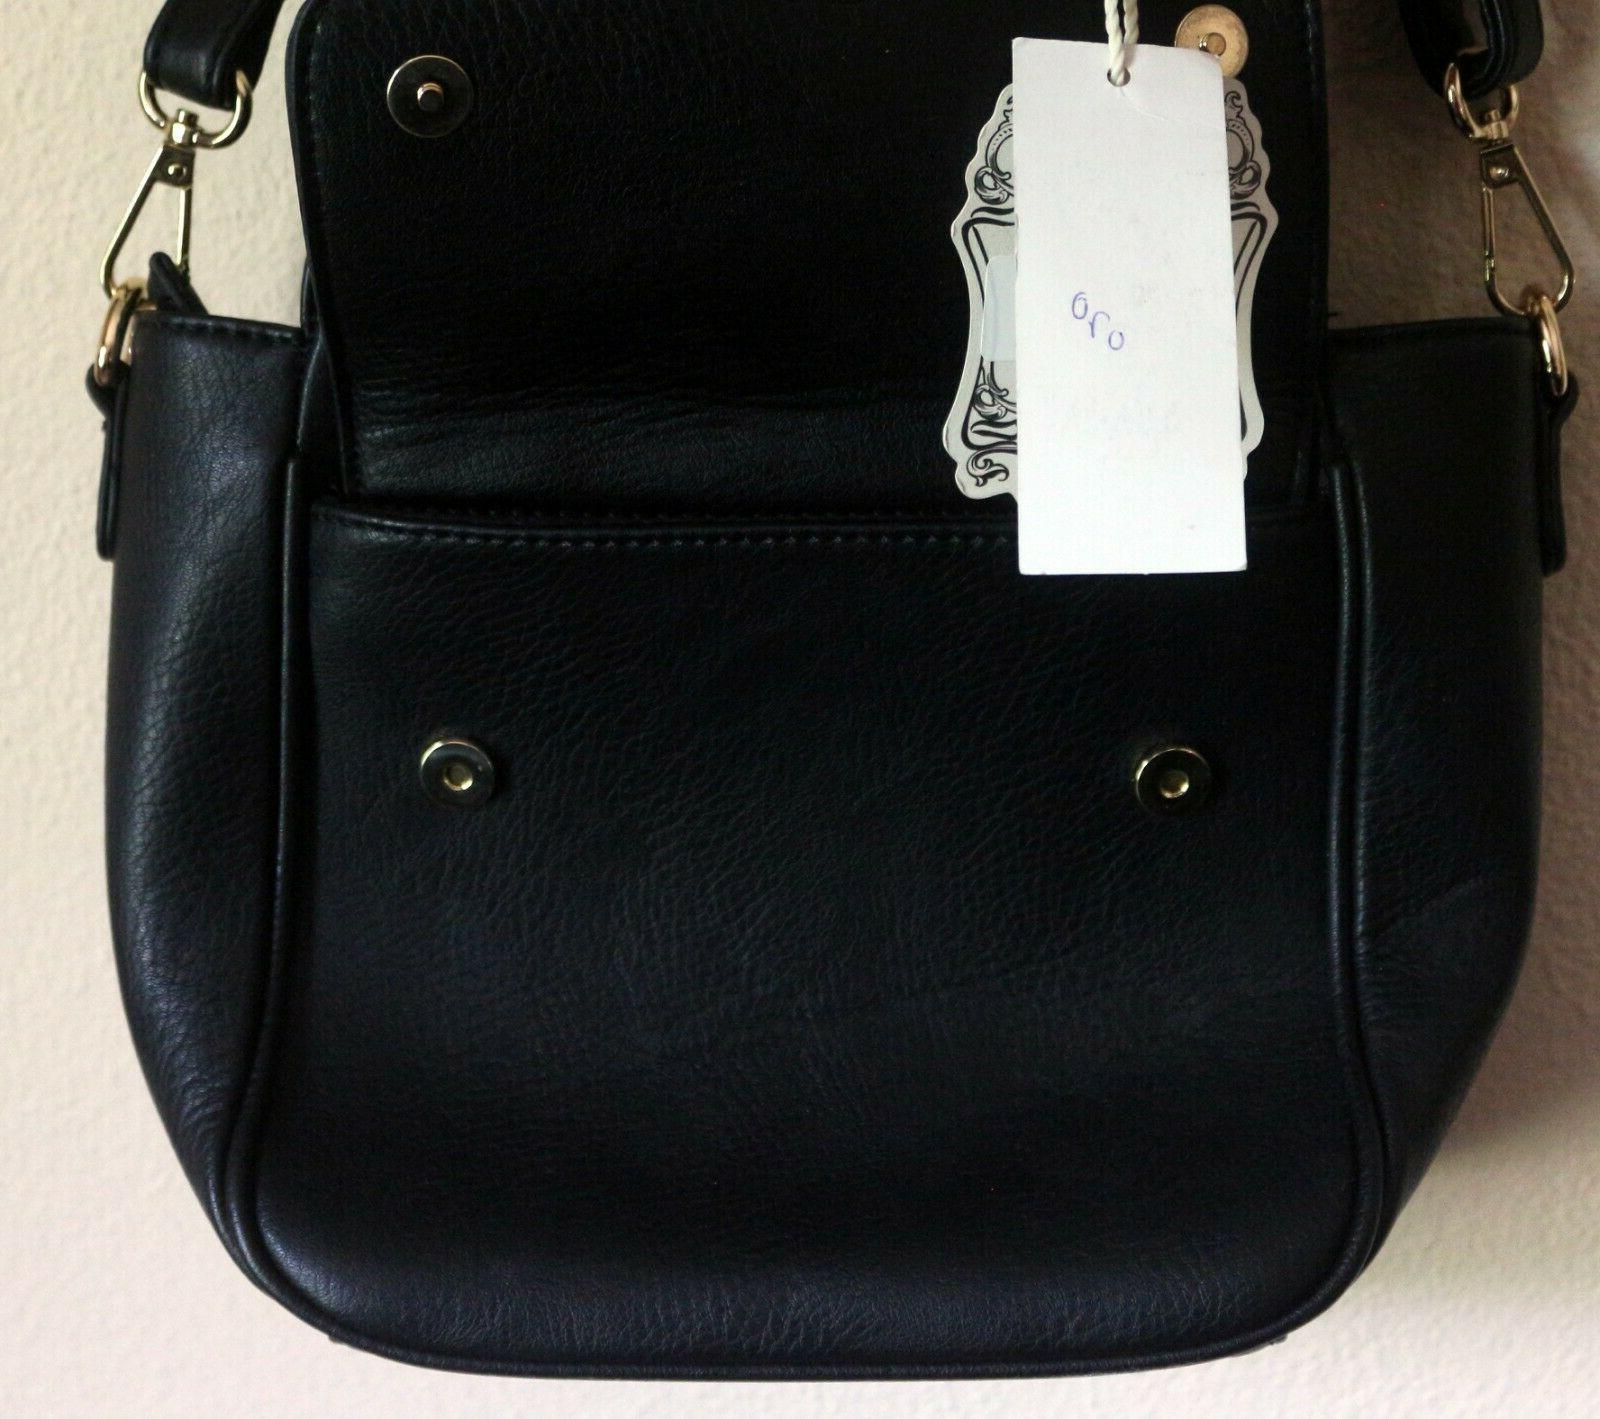 NWT Vegan Free Faux Leather Black Handbag Crossbody Purse